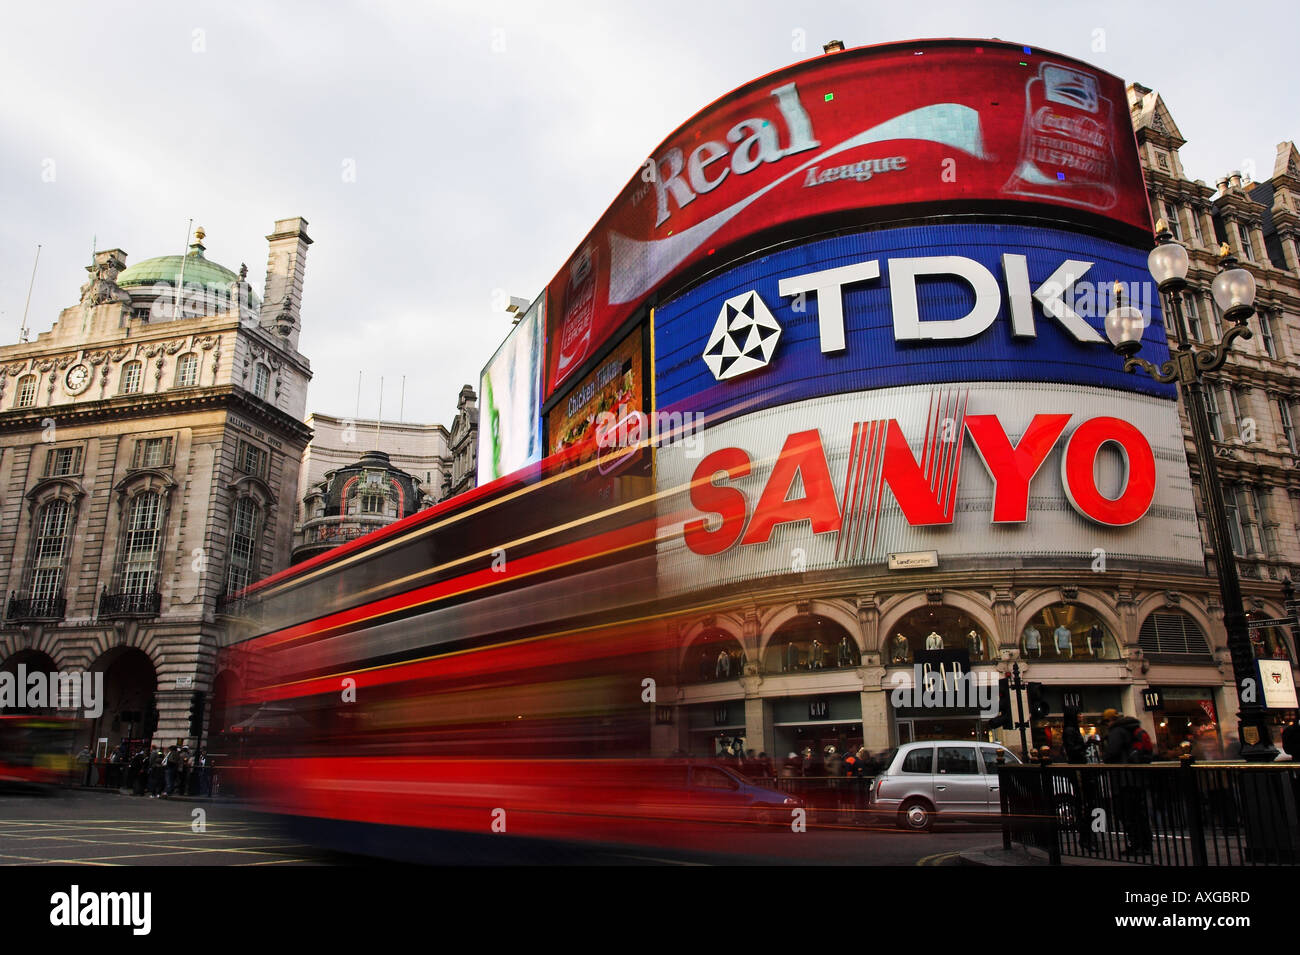 Picadilly Circus, London with bright billboards and red double decker bus blurred in foreground. Stock Photo